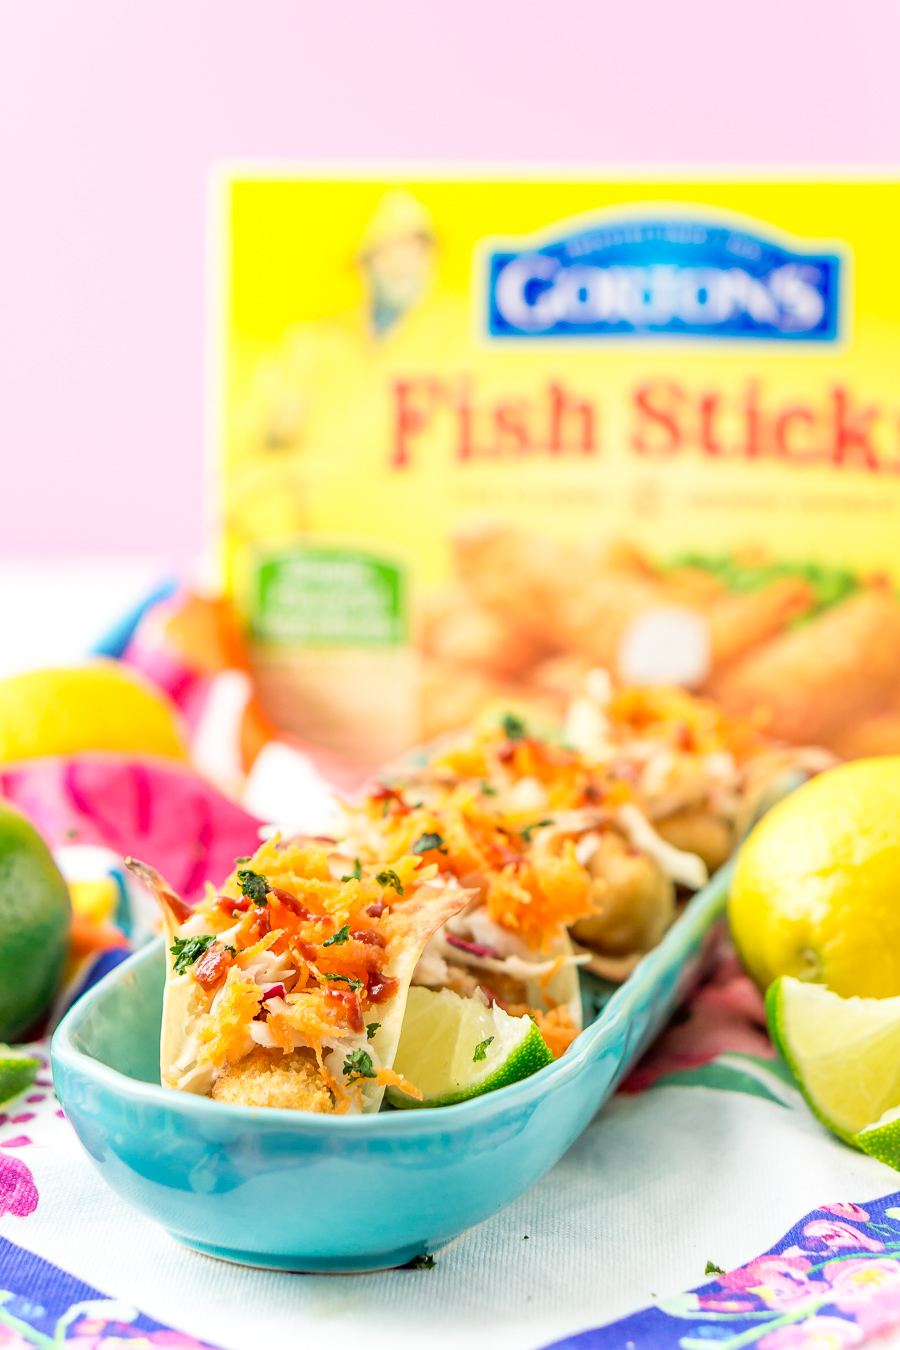 These Fish Sticks Wonton Tacos are an easy appetizer recipe perfect for get-togethers. Each mini taco is made with Crunchy Breaded Fish Sticks, crunchy slaw, and an Asian-inspired sauce.